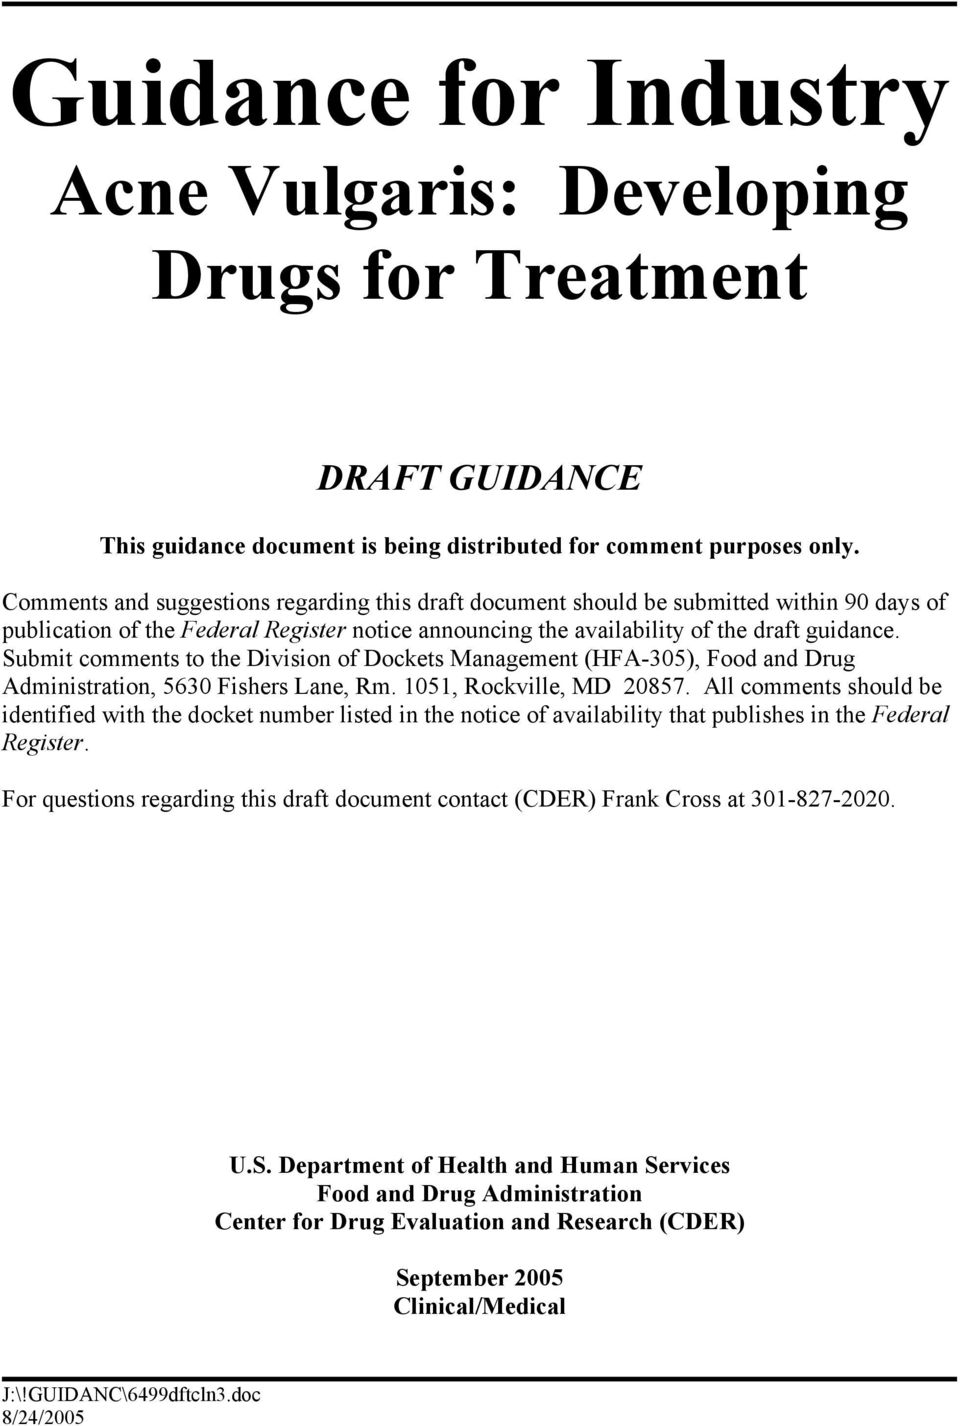 Submit comments to the Division of Dockets Management (HFA-305), Food and Drug Administration, 5630 Fishers Lane, Rm. 1051, Rockville, MD 20857.